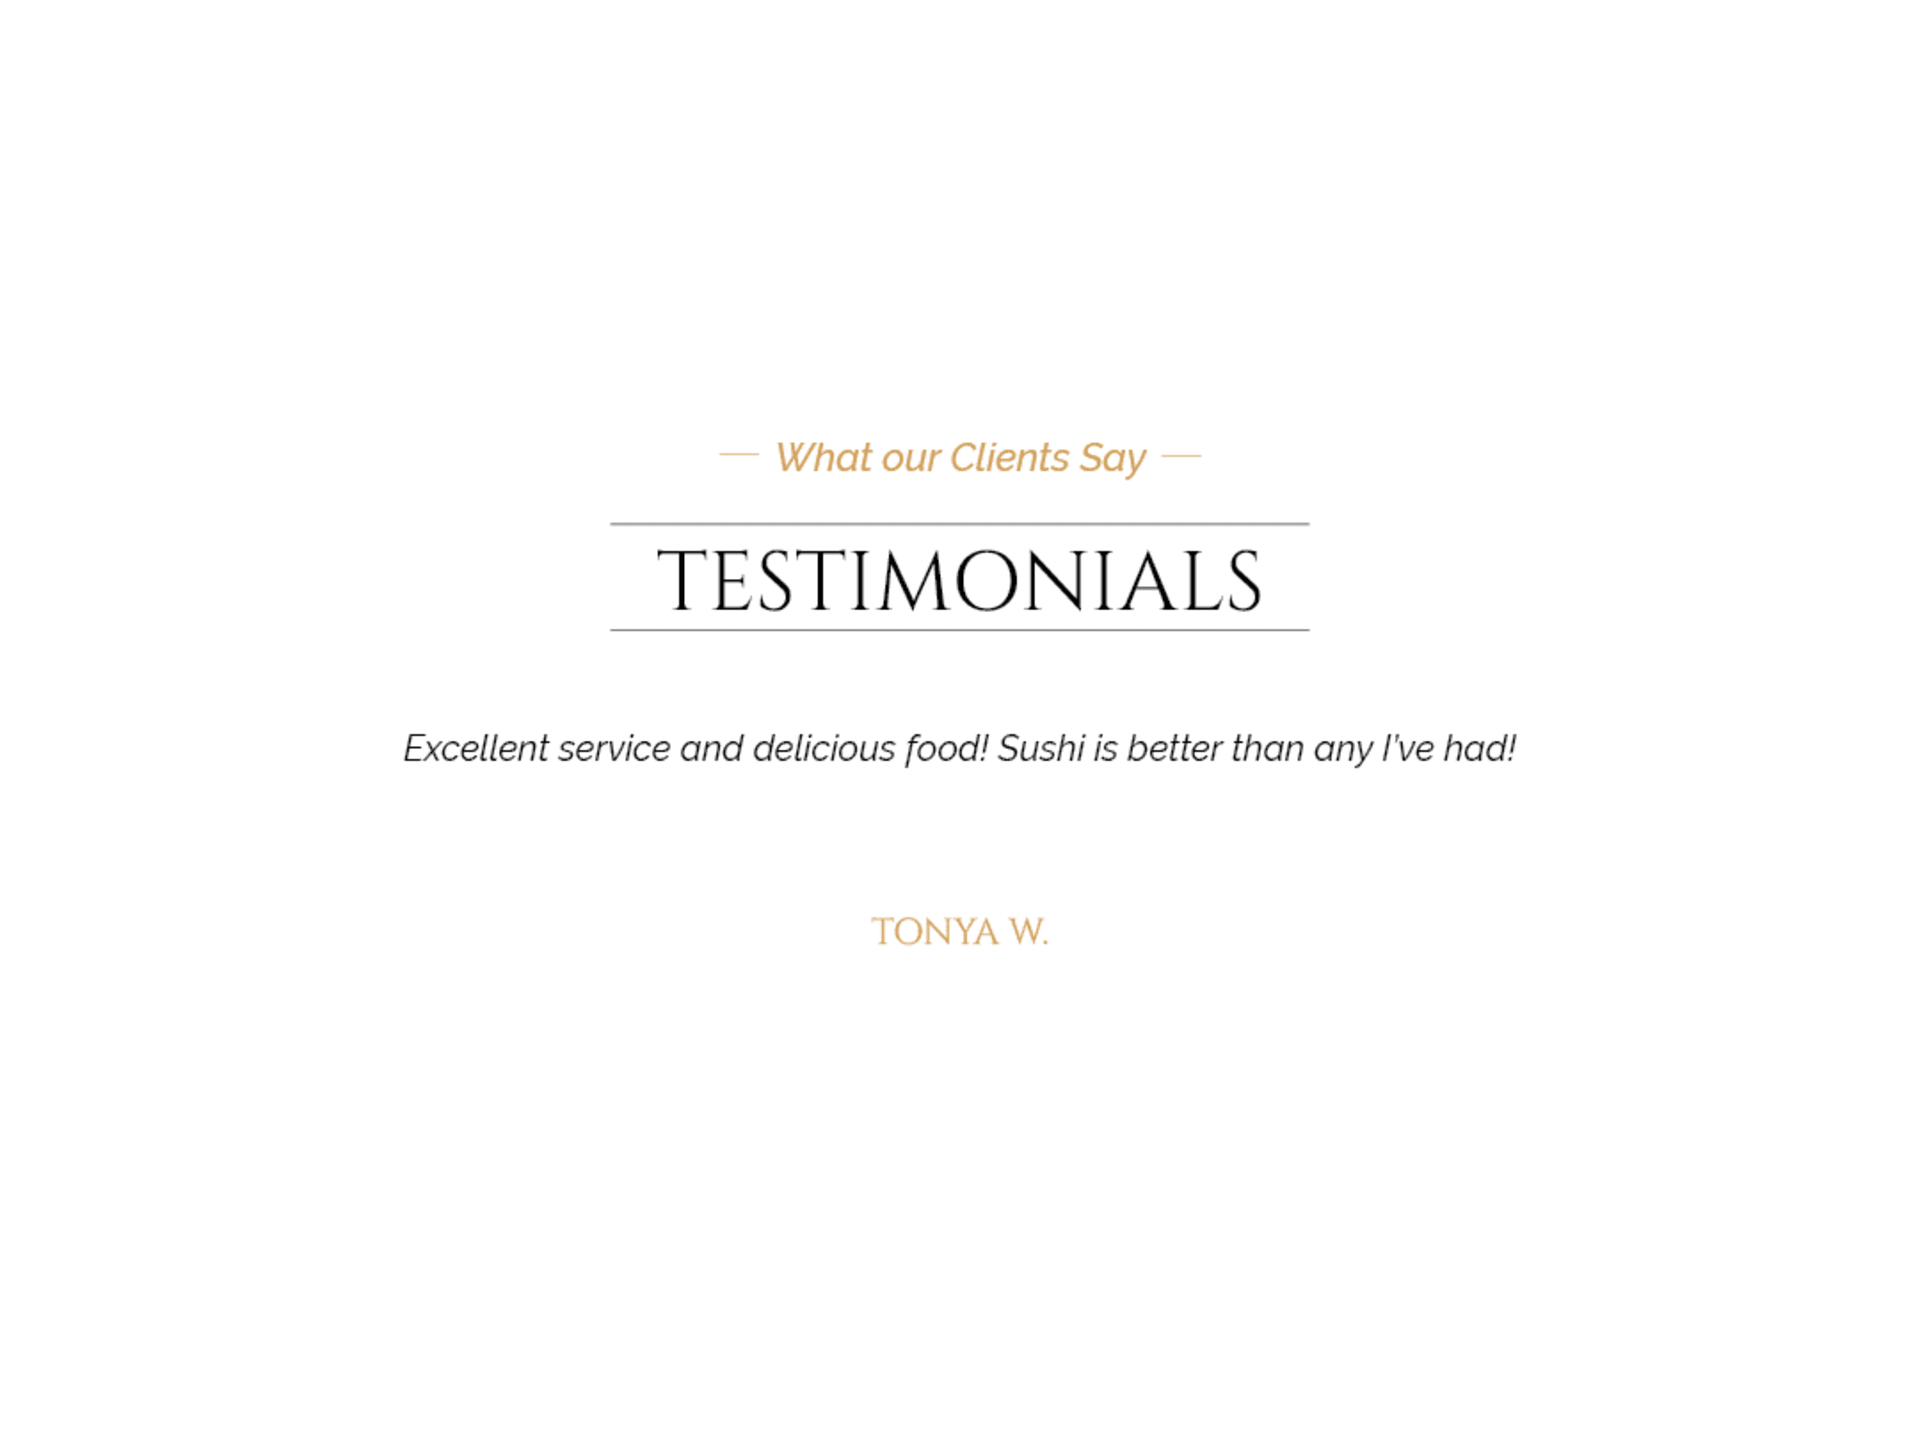 Client testimonial: Excellent service and delicious food! Sushi is better than any I've had! Tonya W.